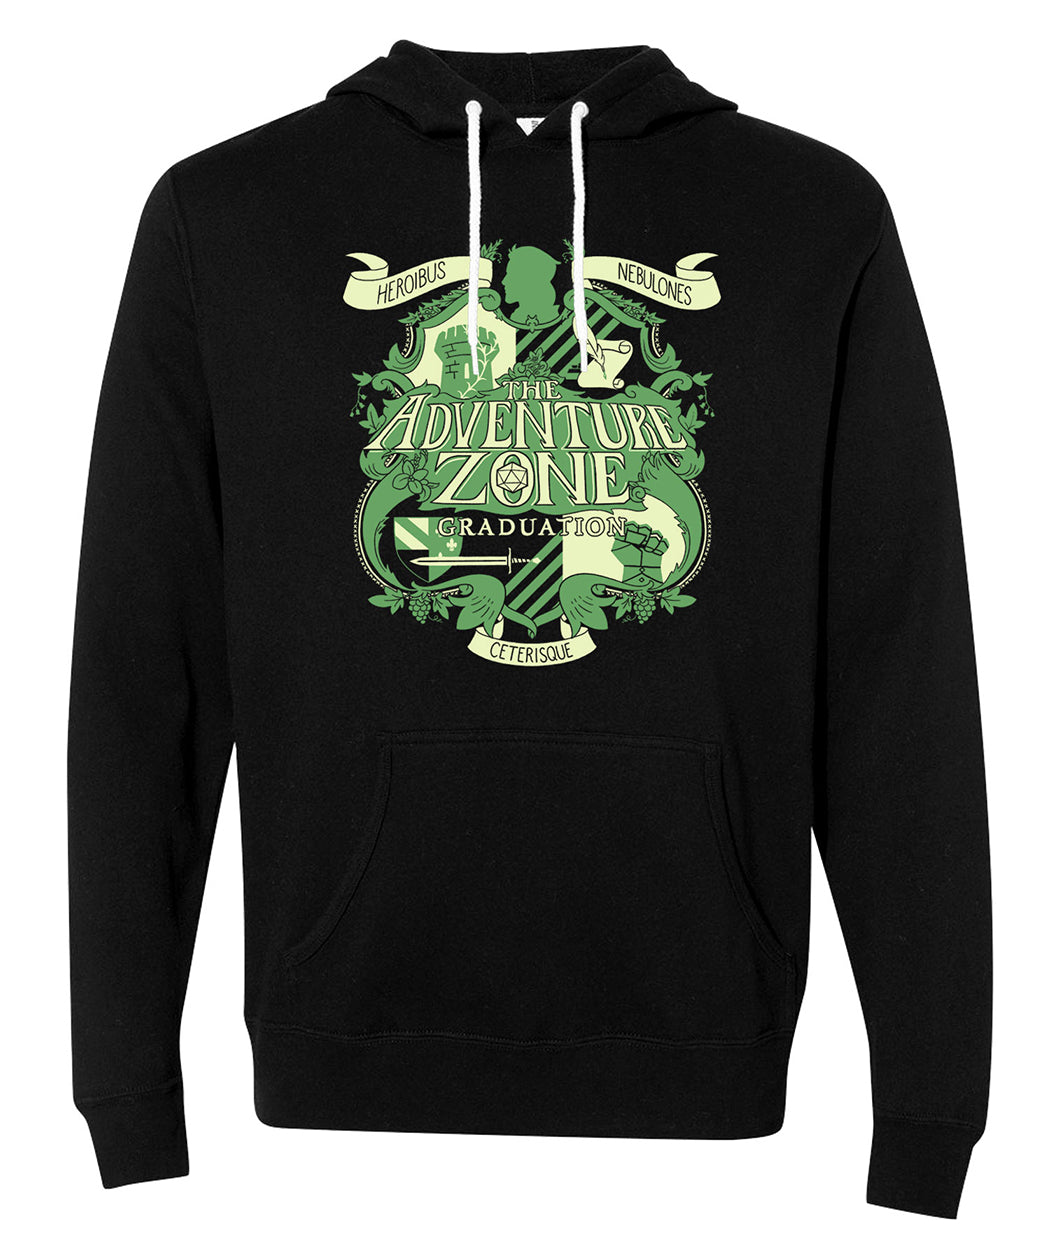 The Adventure Zone Graduation Hoodie